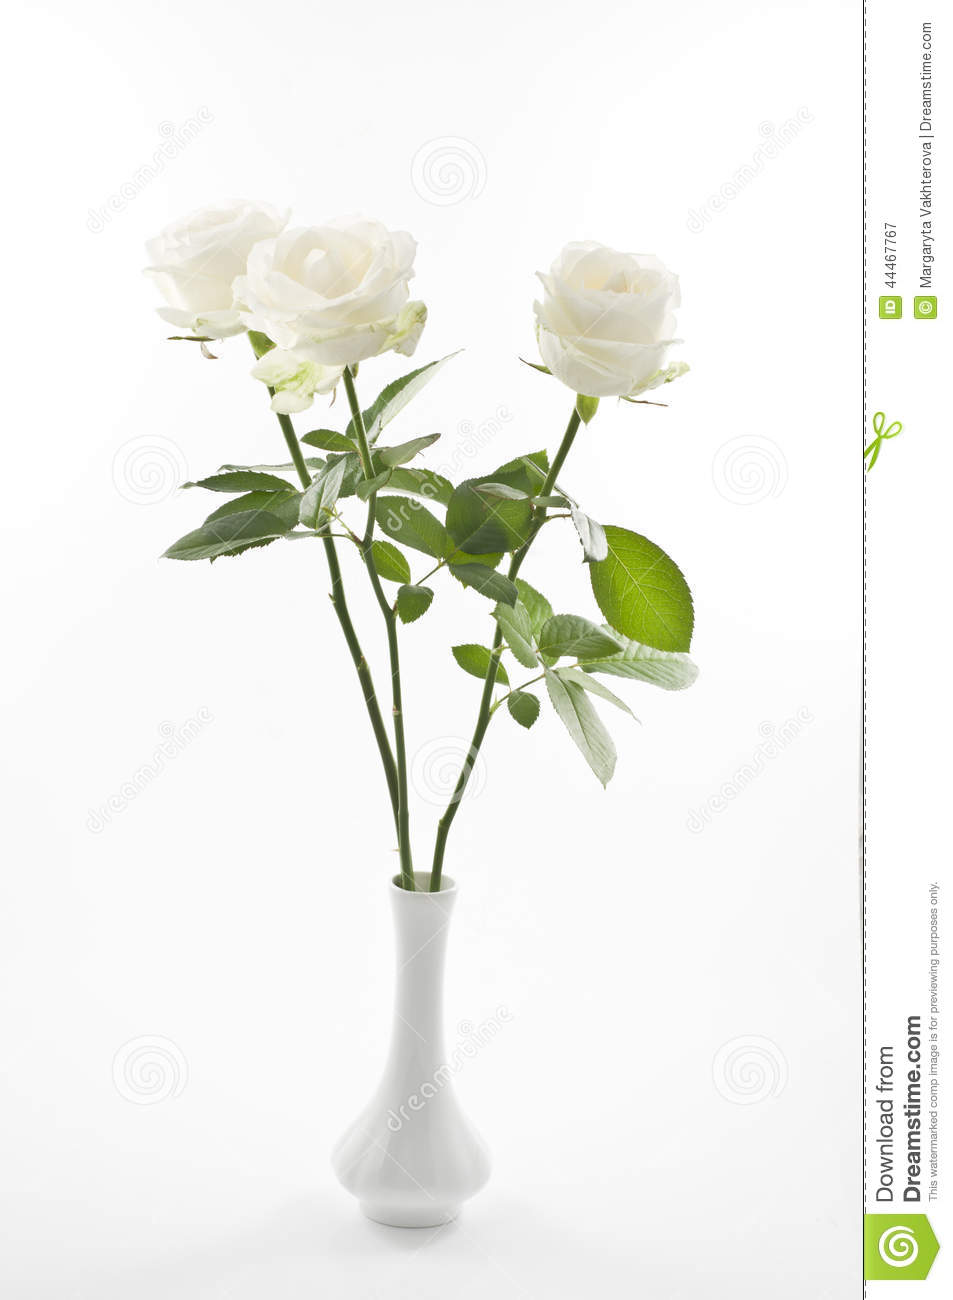 White Rose Flowers In A Vase Over White Stock Image Image Of Rose